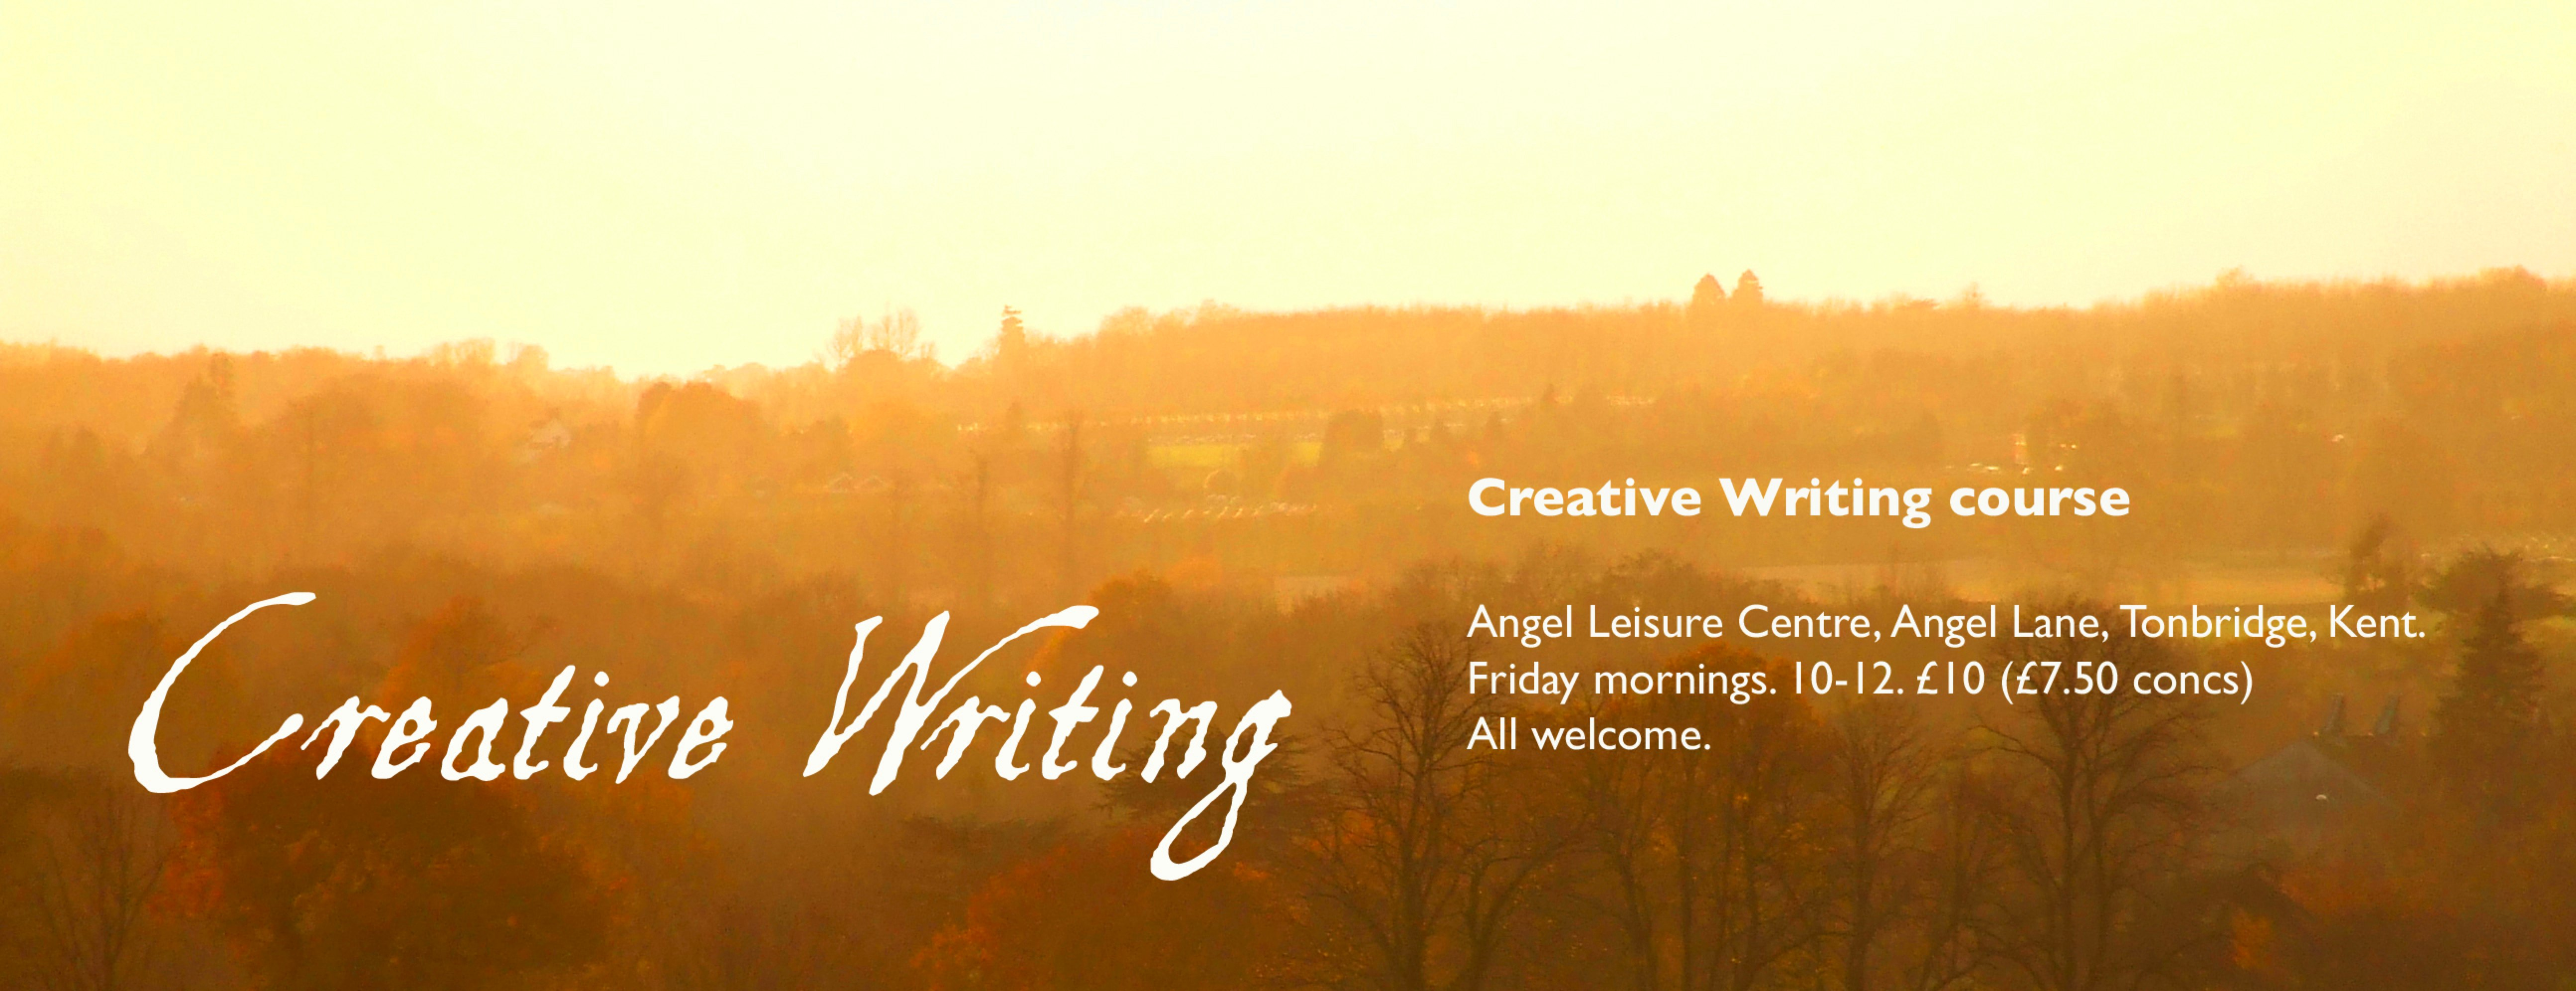 Which is the best University to do a Creative Writing degree?